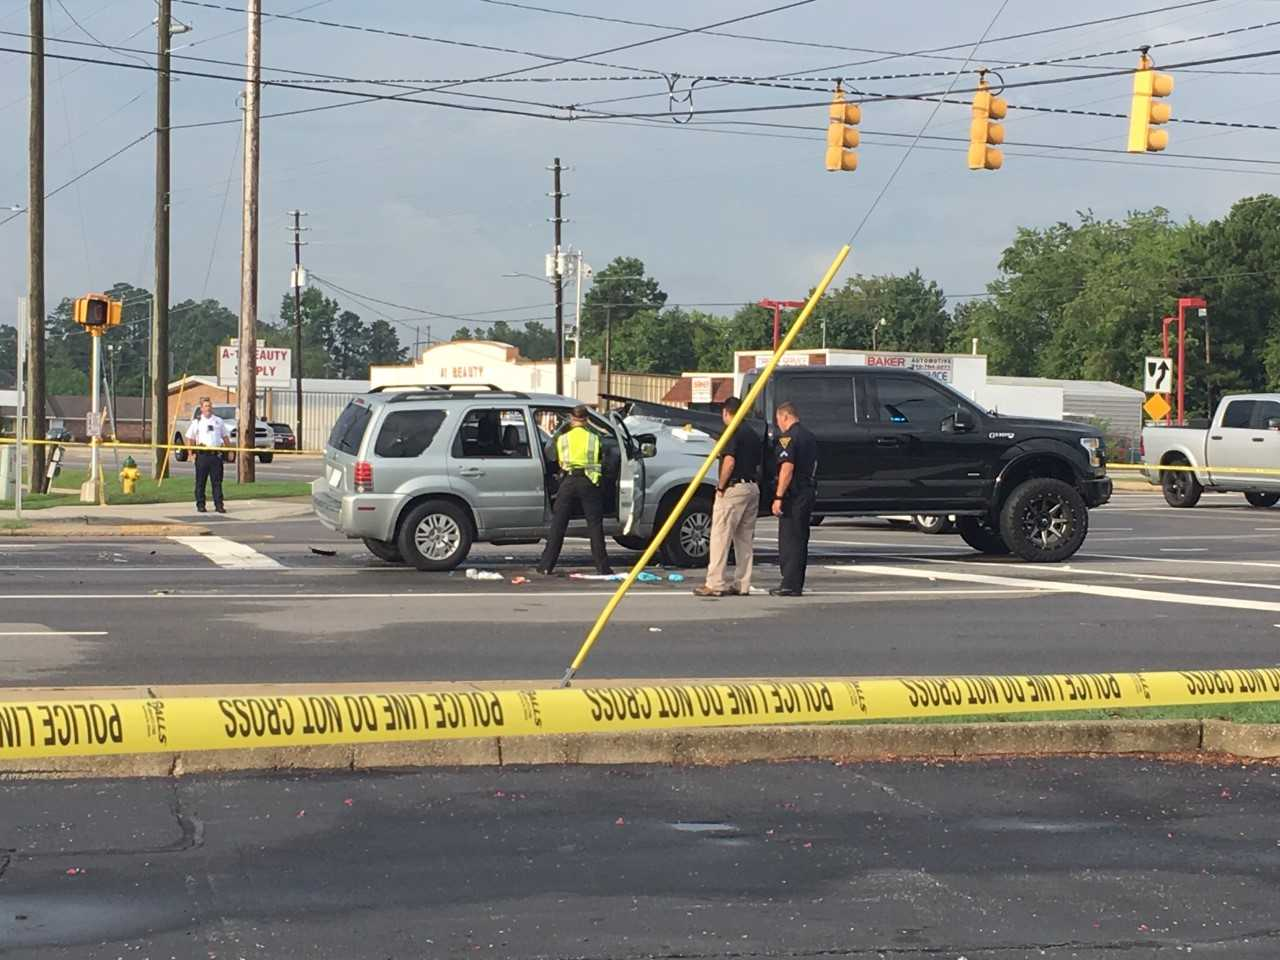 Police: Man shot while driving in Fayetteville, investigation